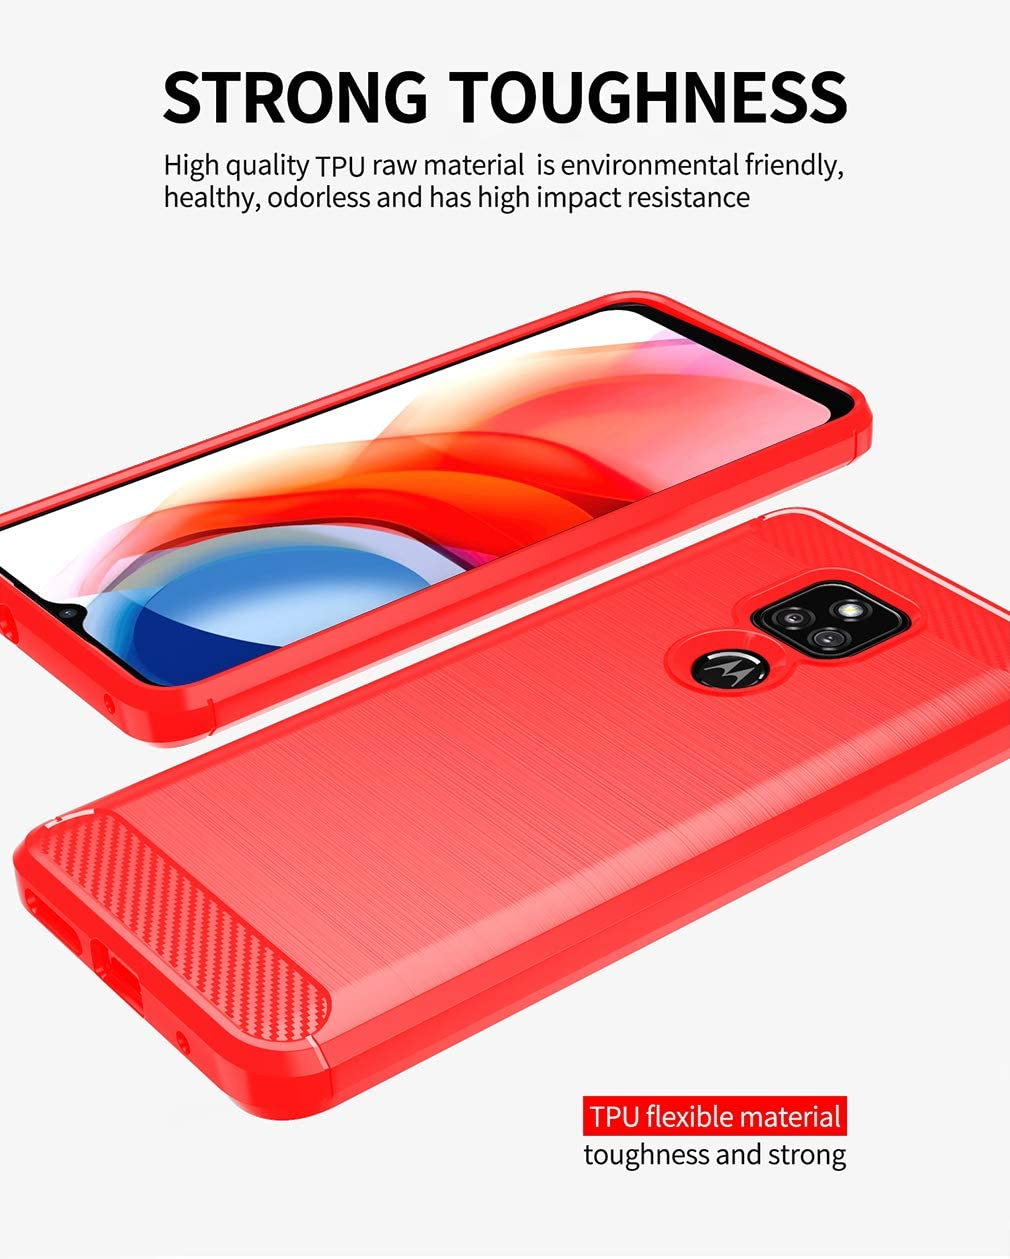 Moto G Play 2021 Case,with HD Screen Protector,Shock-Absorption Flexible TPU Bumper Cove Soft Rubber Protective Case for Motorola Moto G Play 2021 (Red Brushed TPU)